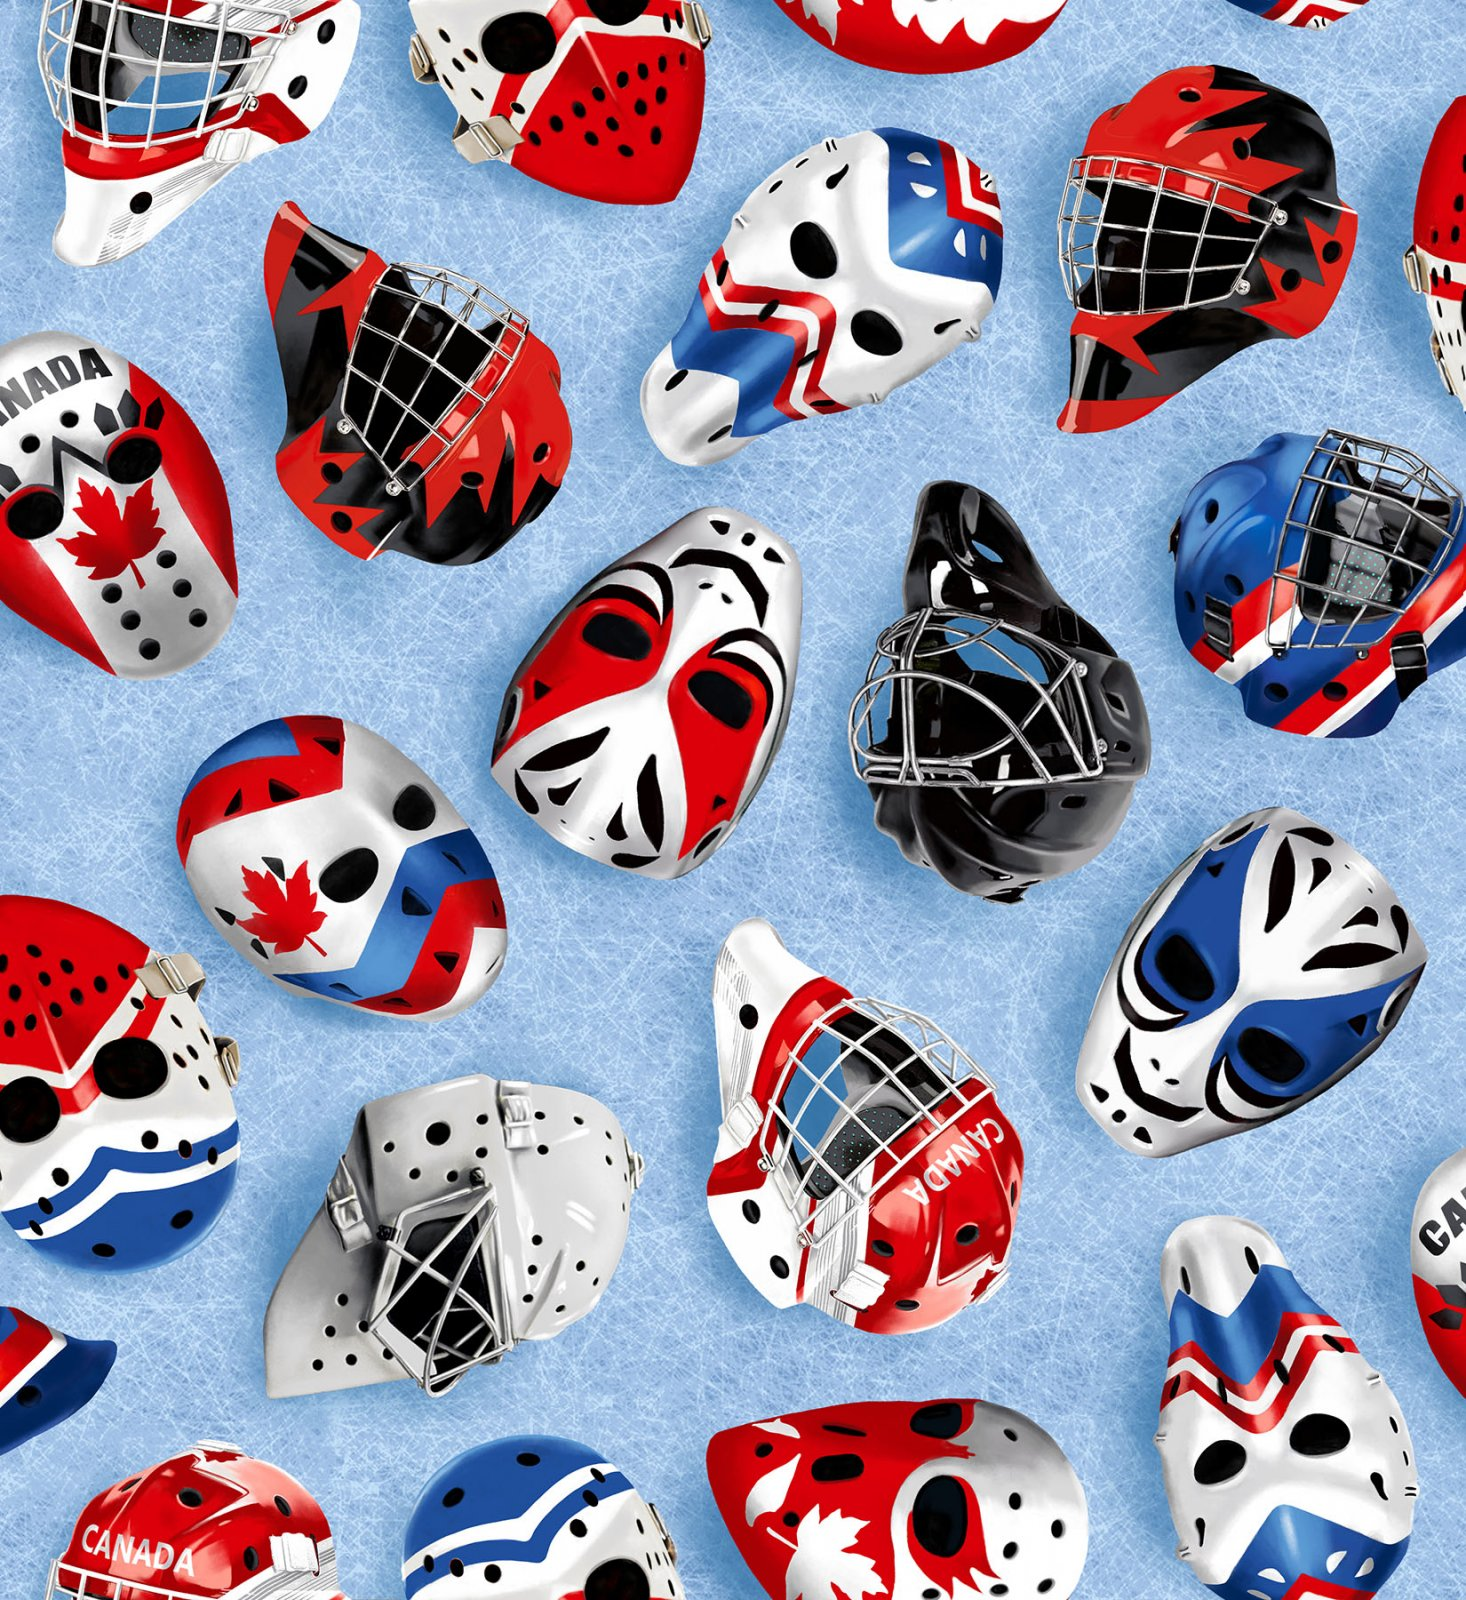 Canada's Game - Goalie Masks